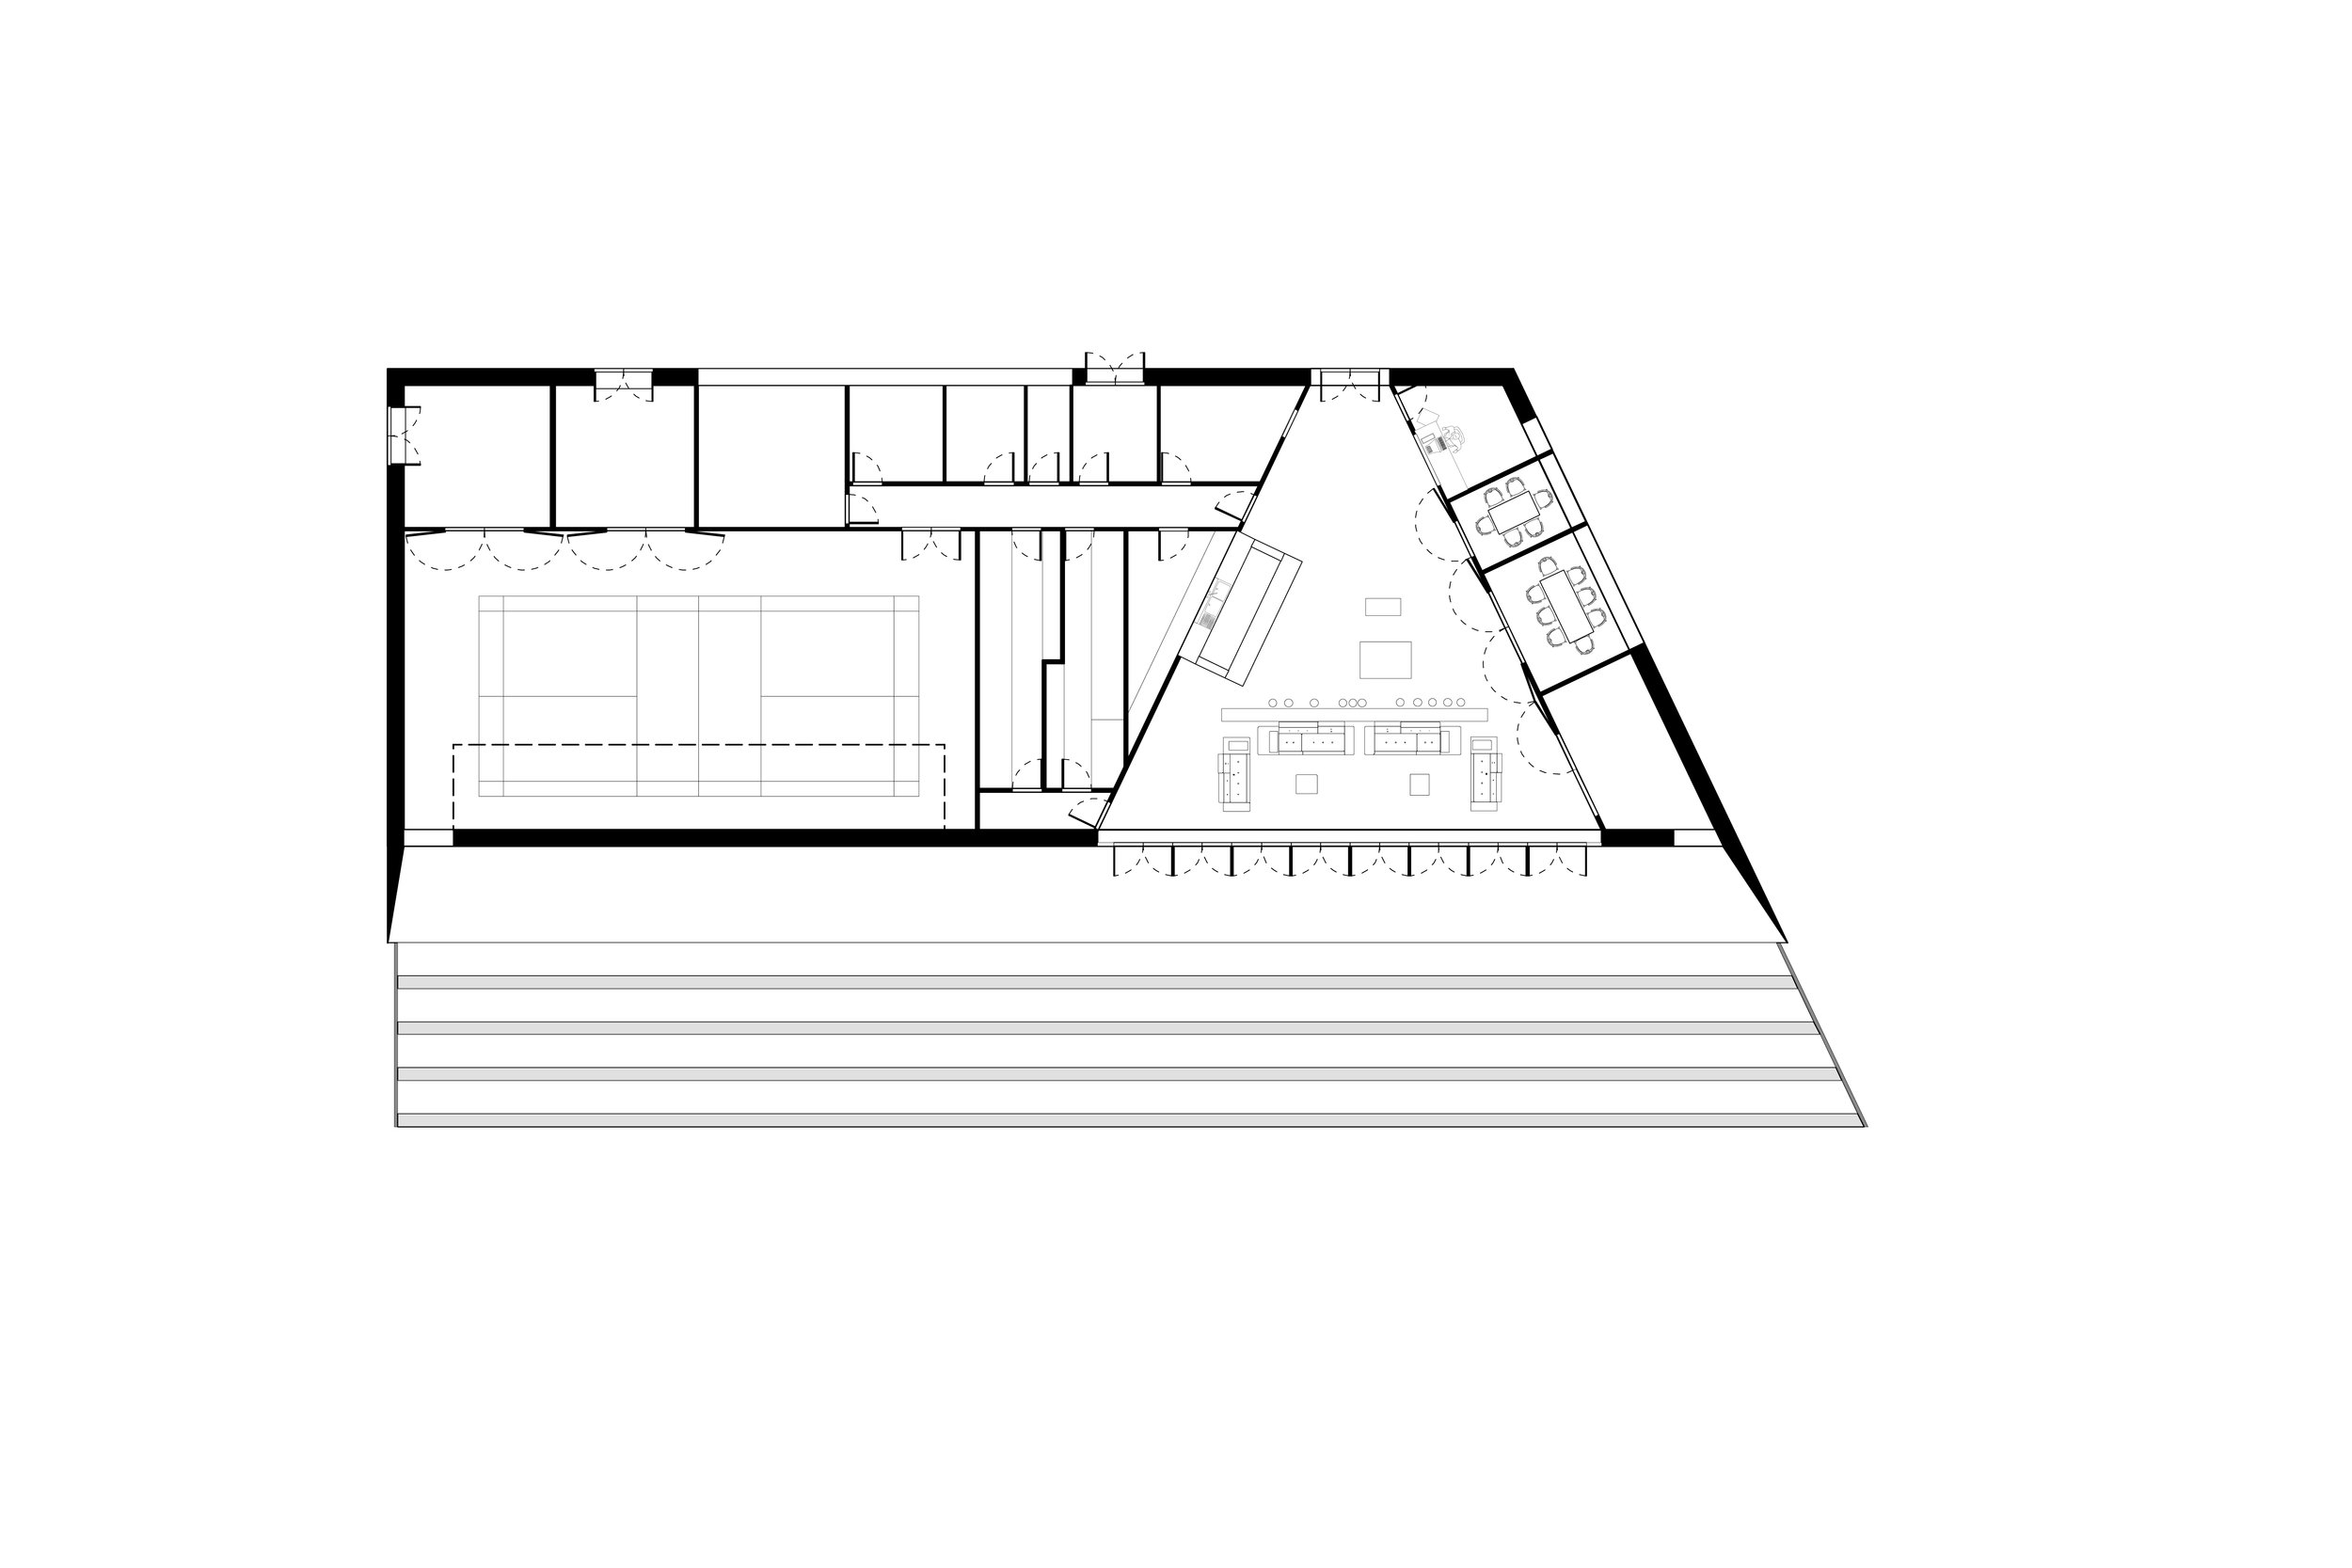 Floor Plan of Youth Centre in Macclesfield